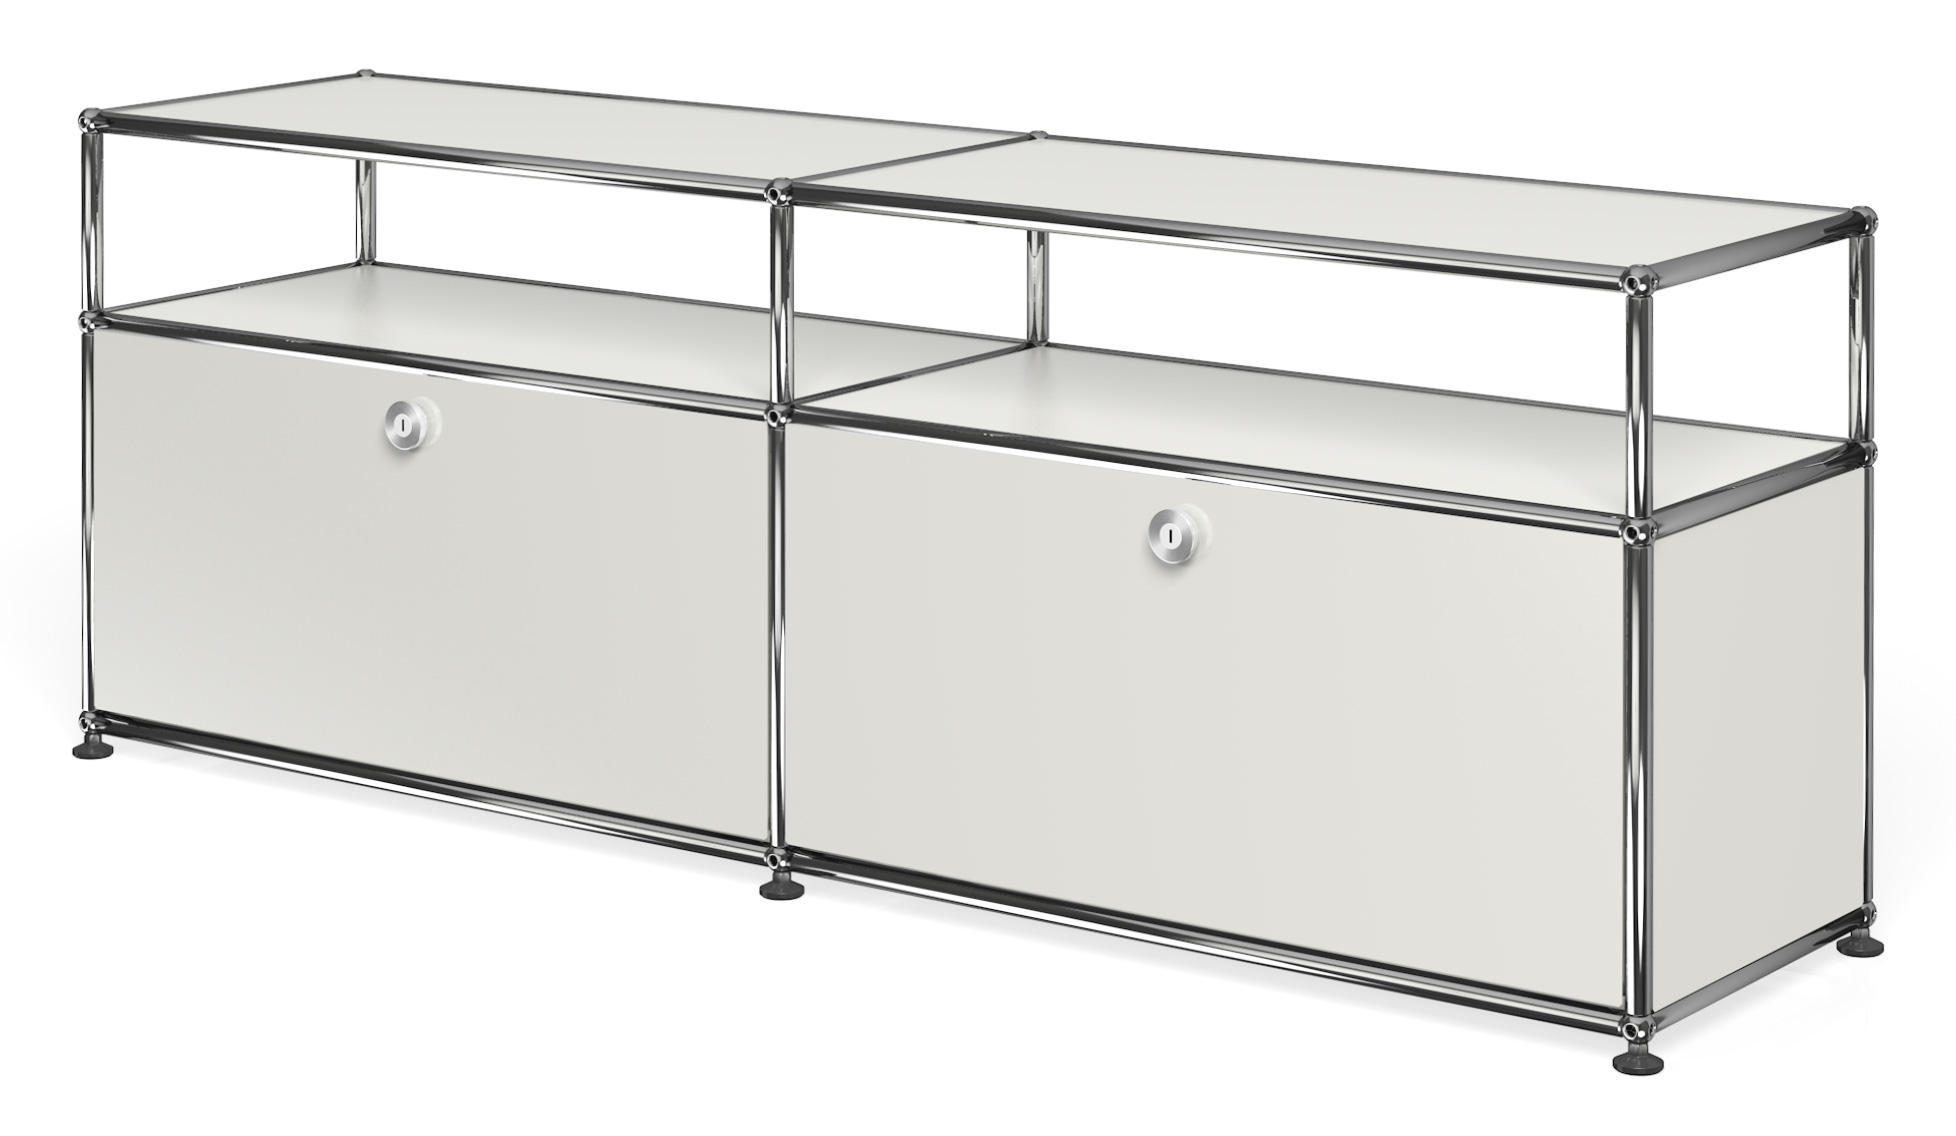 Usm haller sideboard with 2 doors open top for Usm haller sideboard weiay